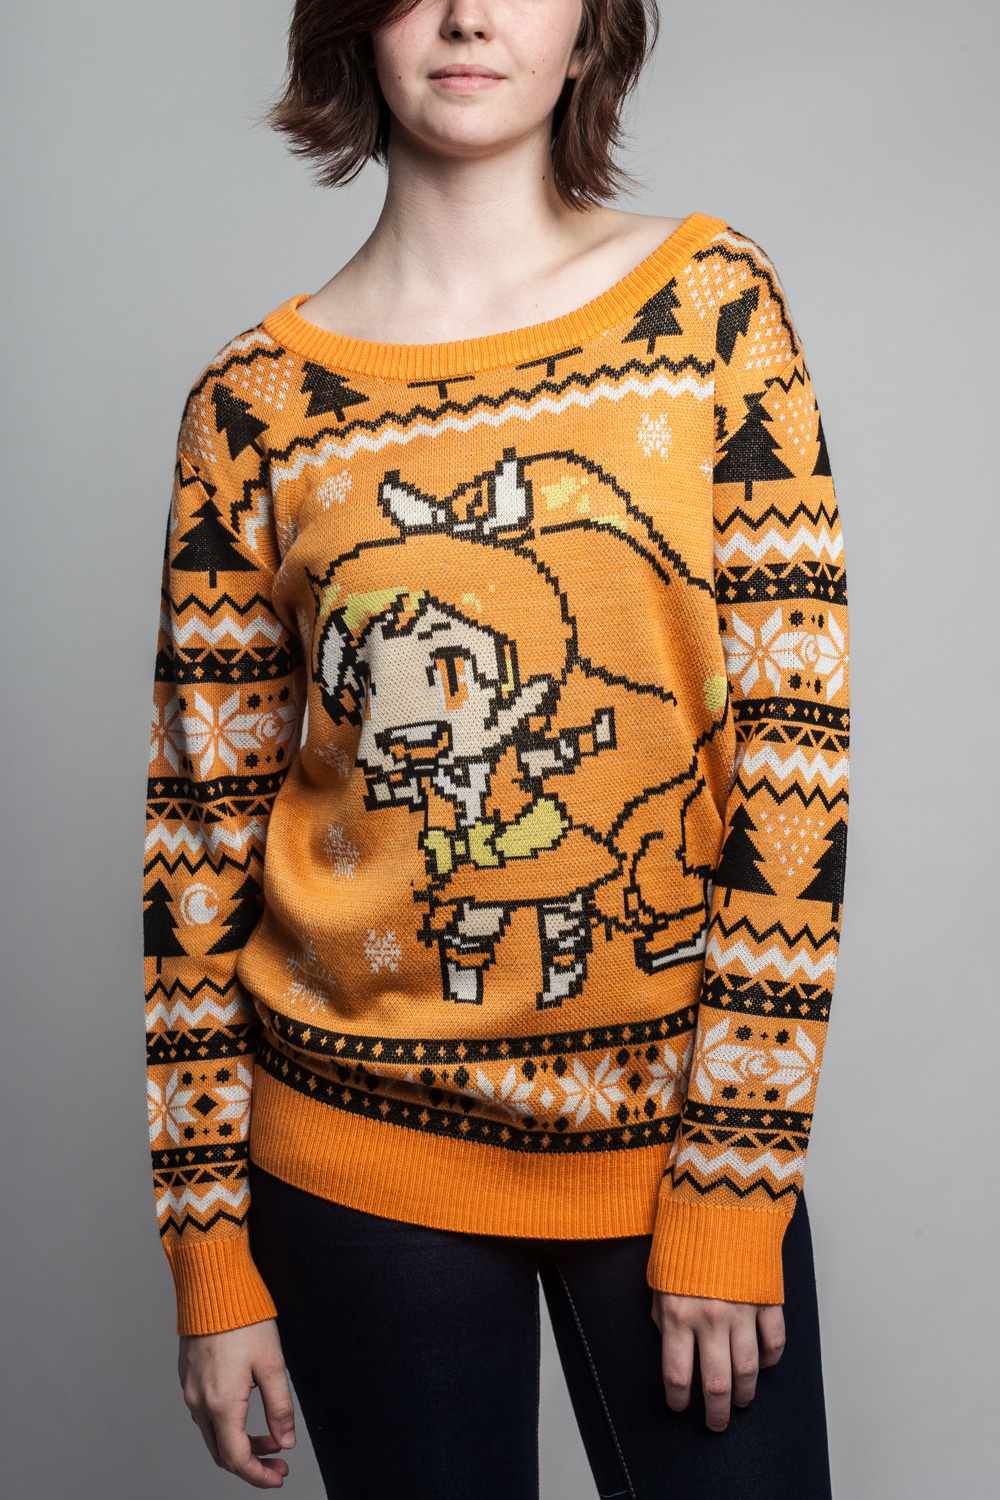 Bioworld Crunchyroll Hime Sweater